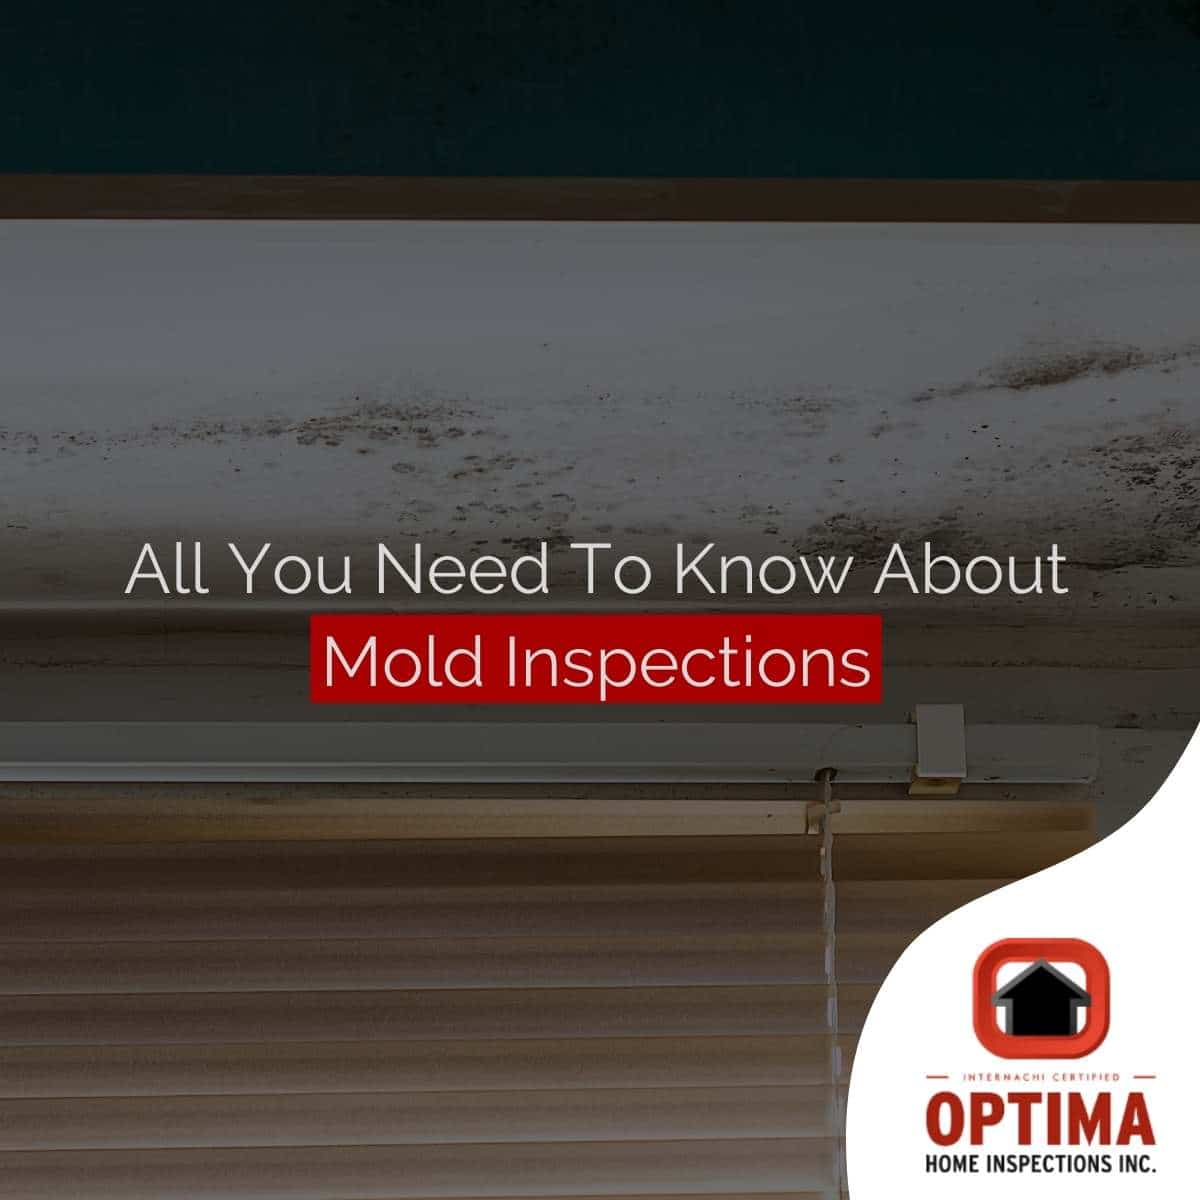 All You Need To Know About Mold Inspections